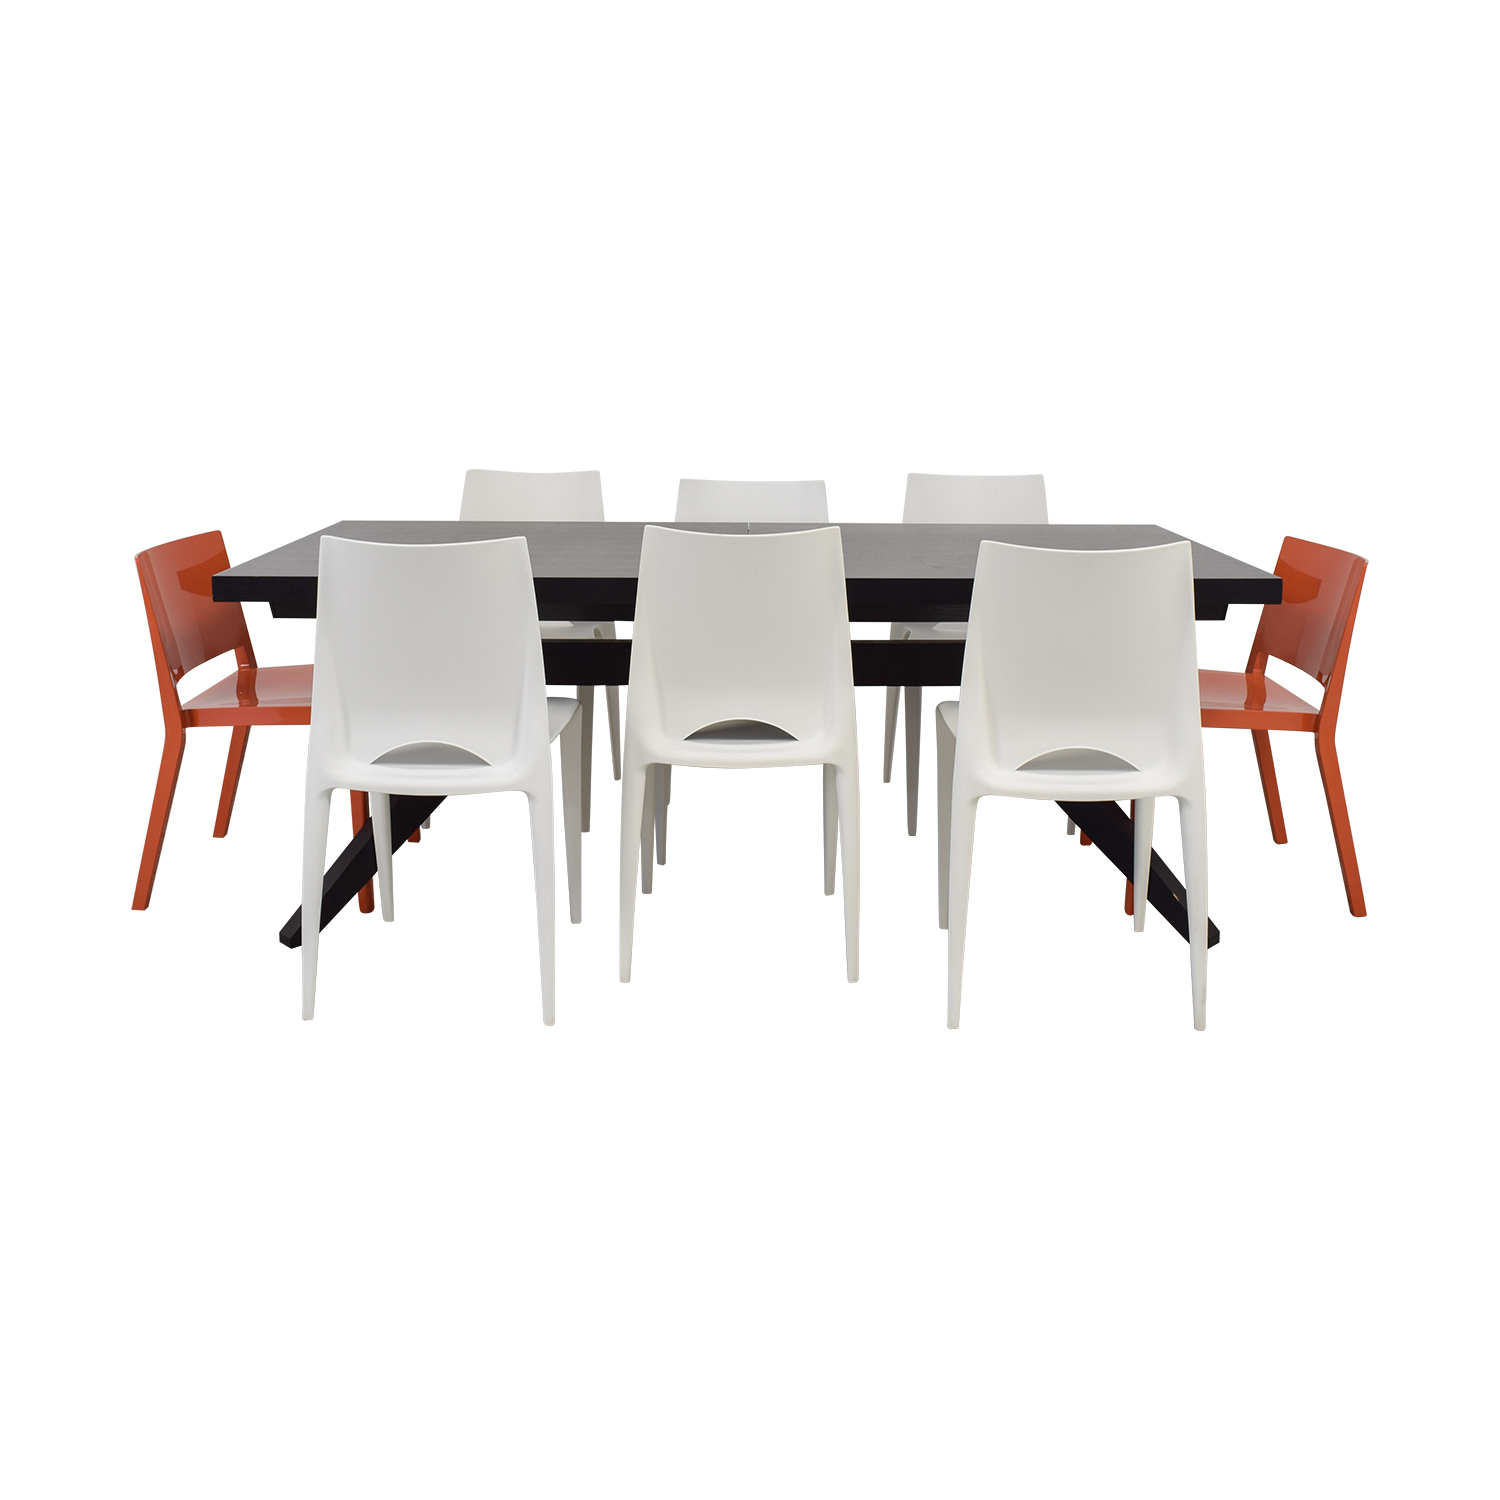 Wood Extendable Table with White and Orange Chairs / Dining Sets